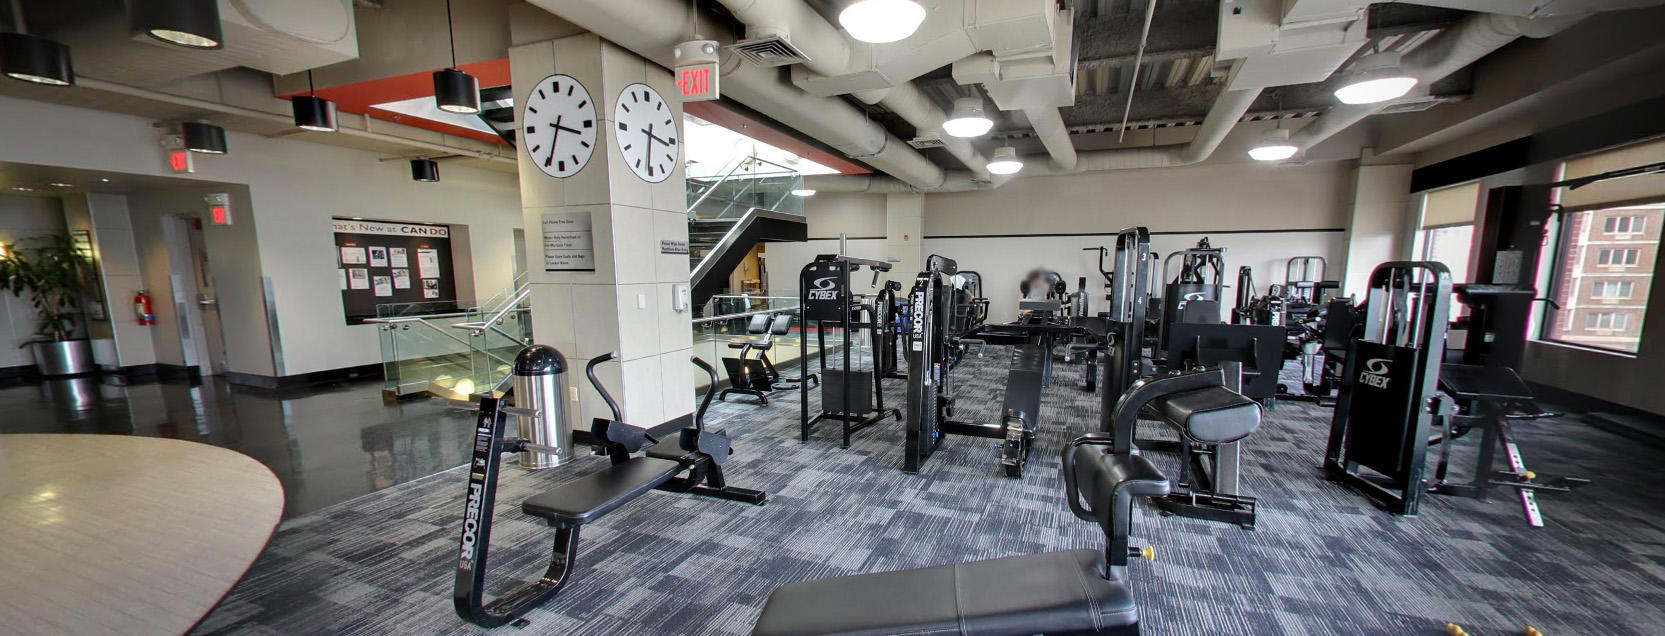 Tilton Fitness Edgewater 42 City Place Edgewater Nj Health Clubs Gyms Mapquest